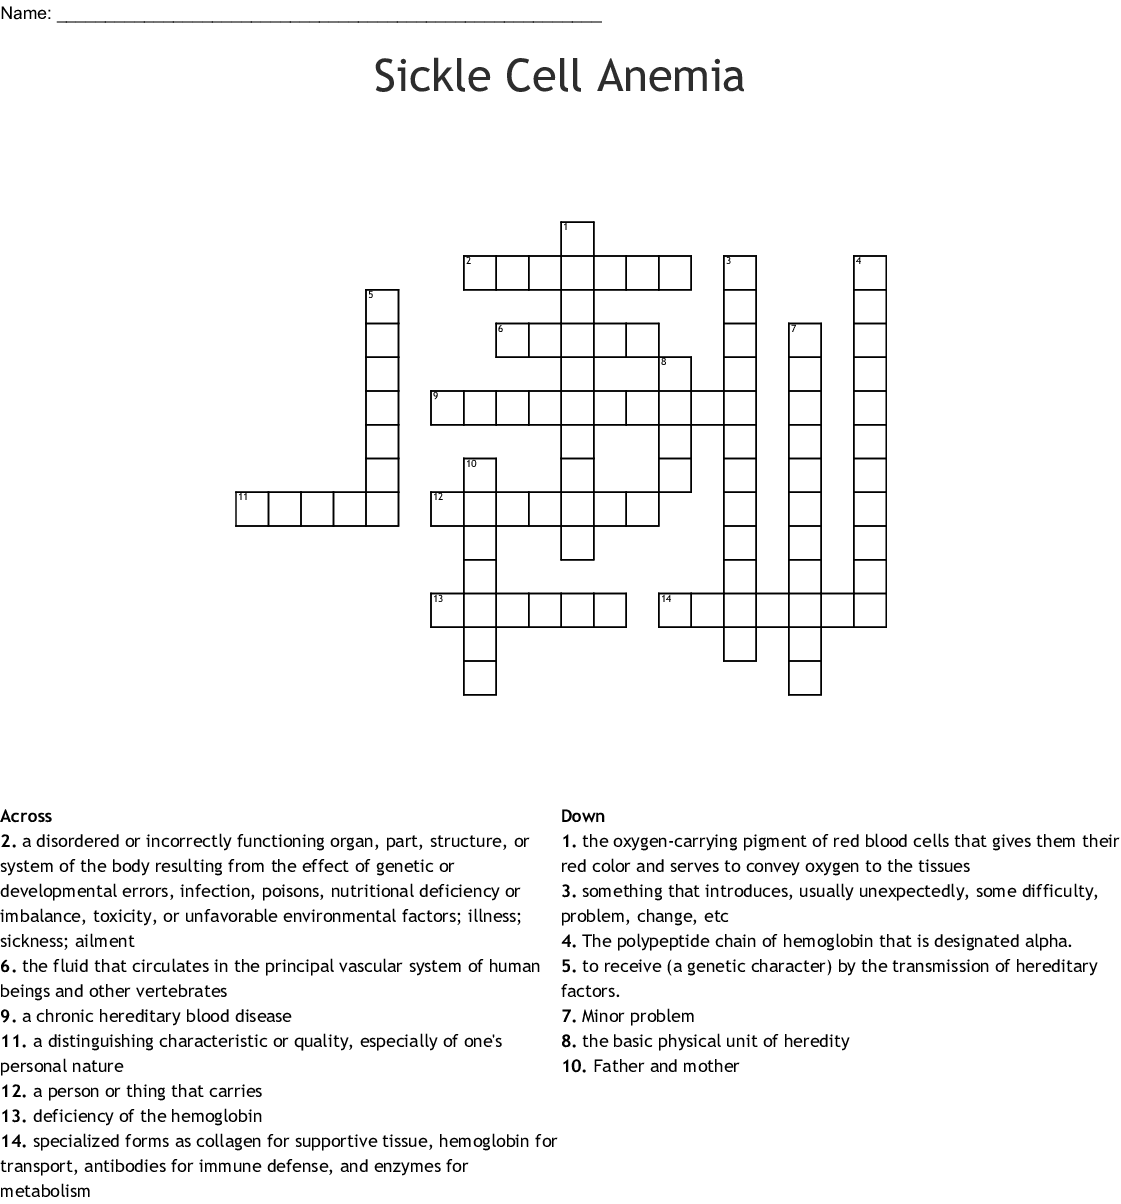 Sickle Cell Anemia Crossword